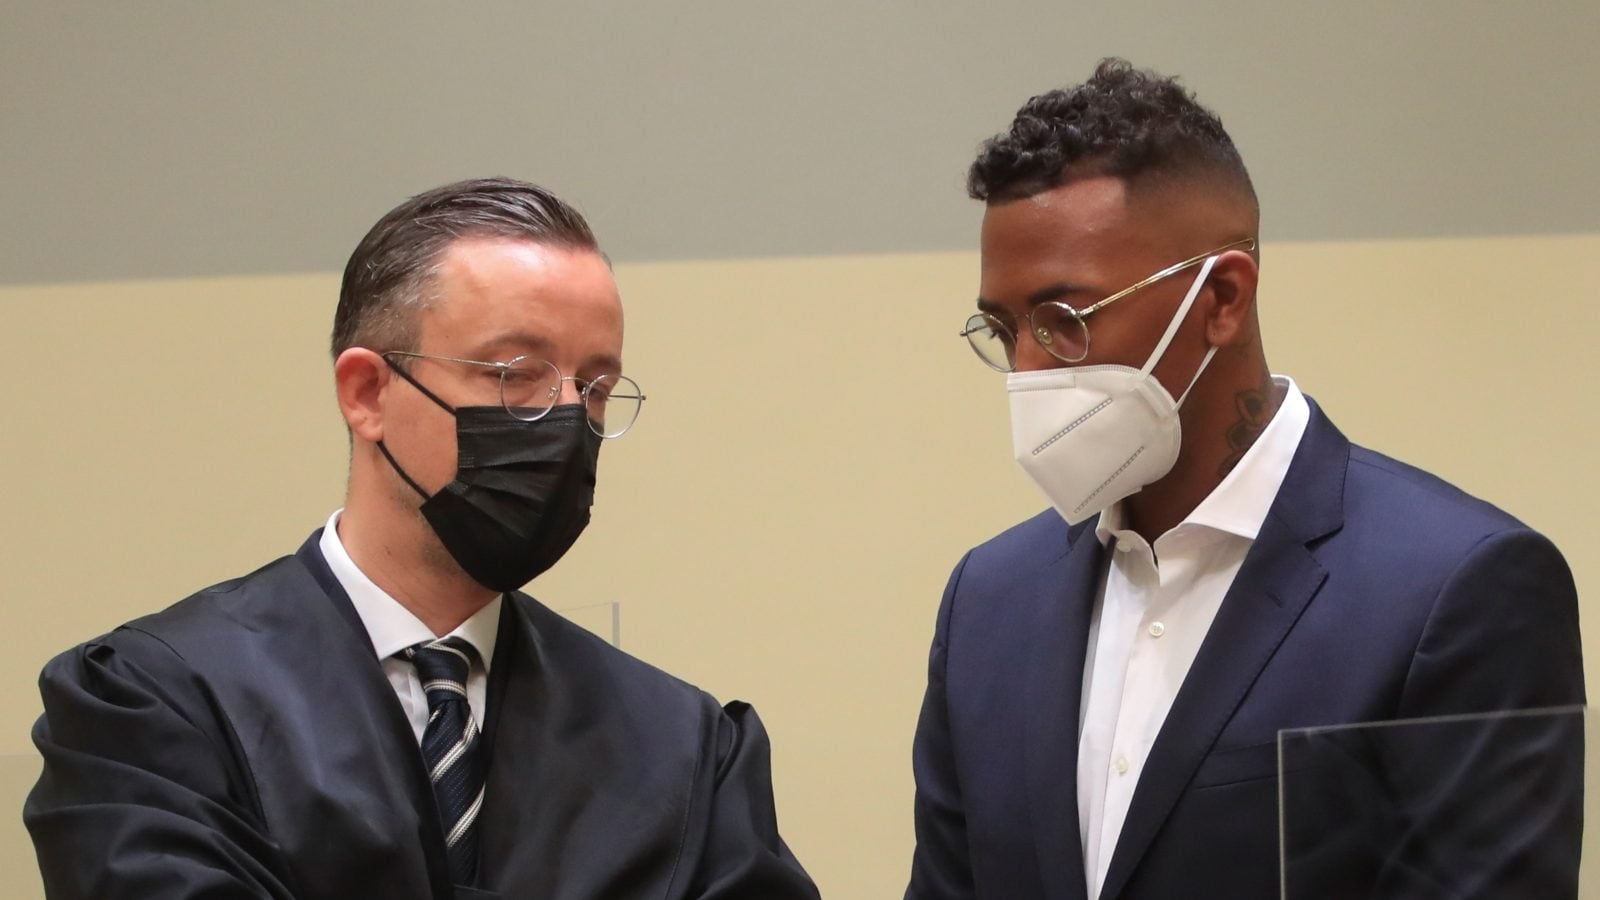 German Footballer Jerome Boateng Convicted of Assaulting